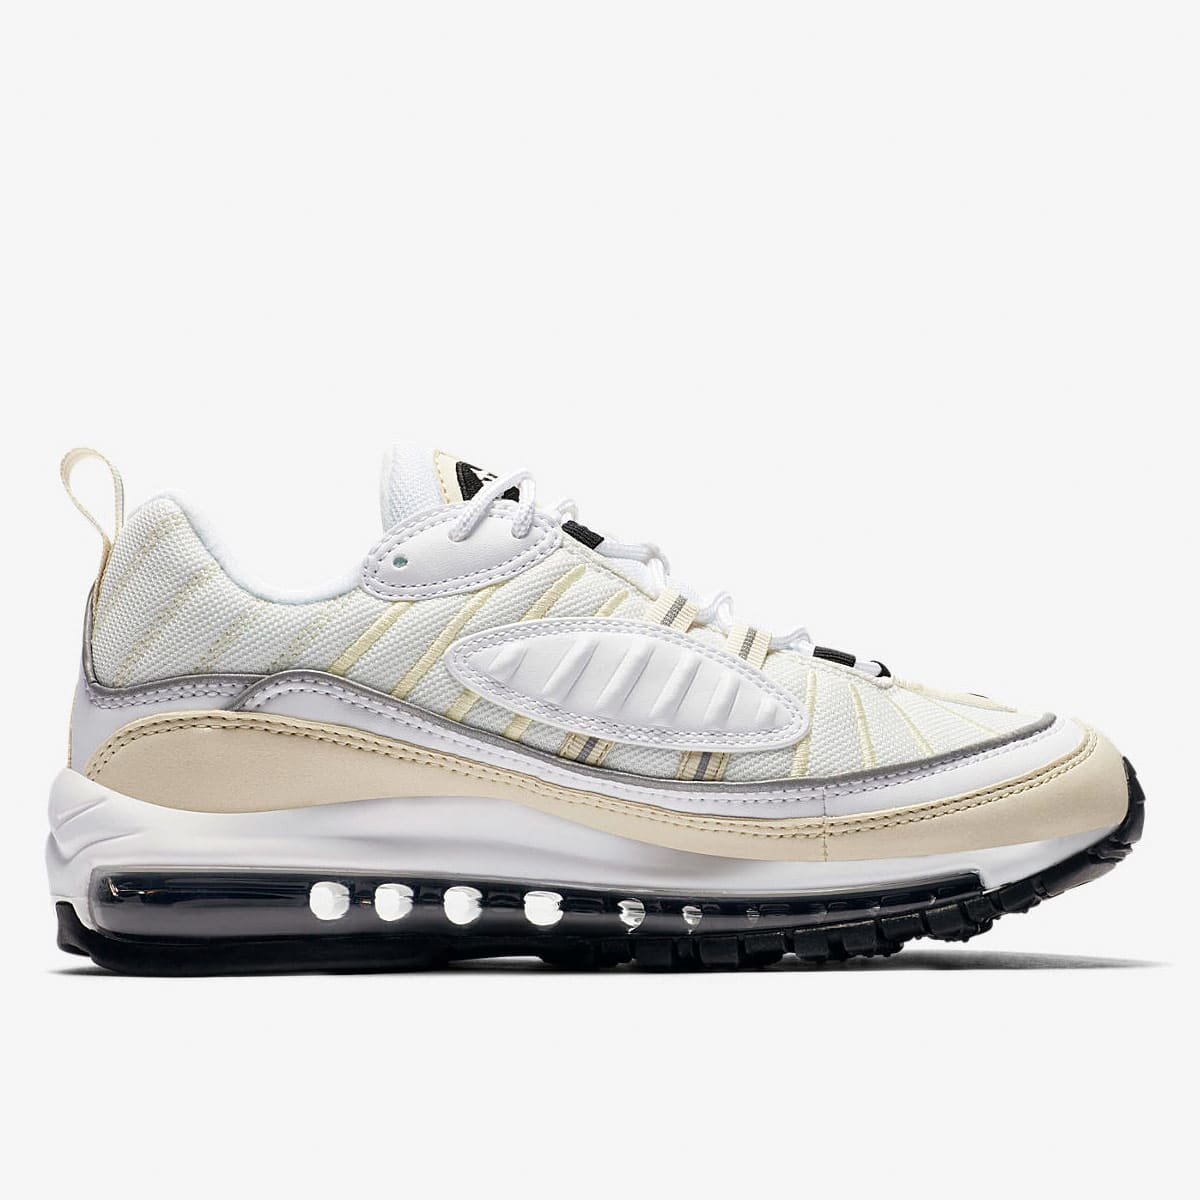 Nike Air Max 98 W (White, Black, Fossil & Silver) | END. Launches